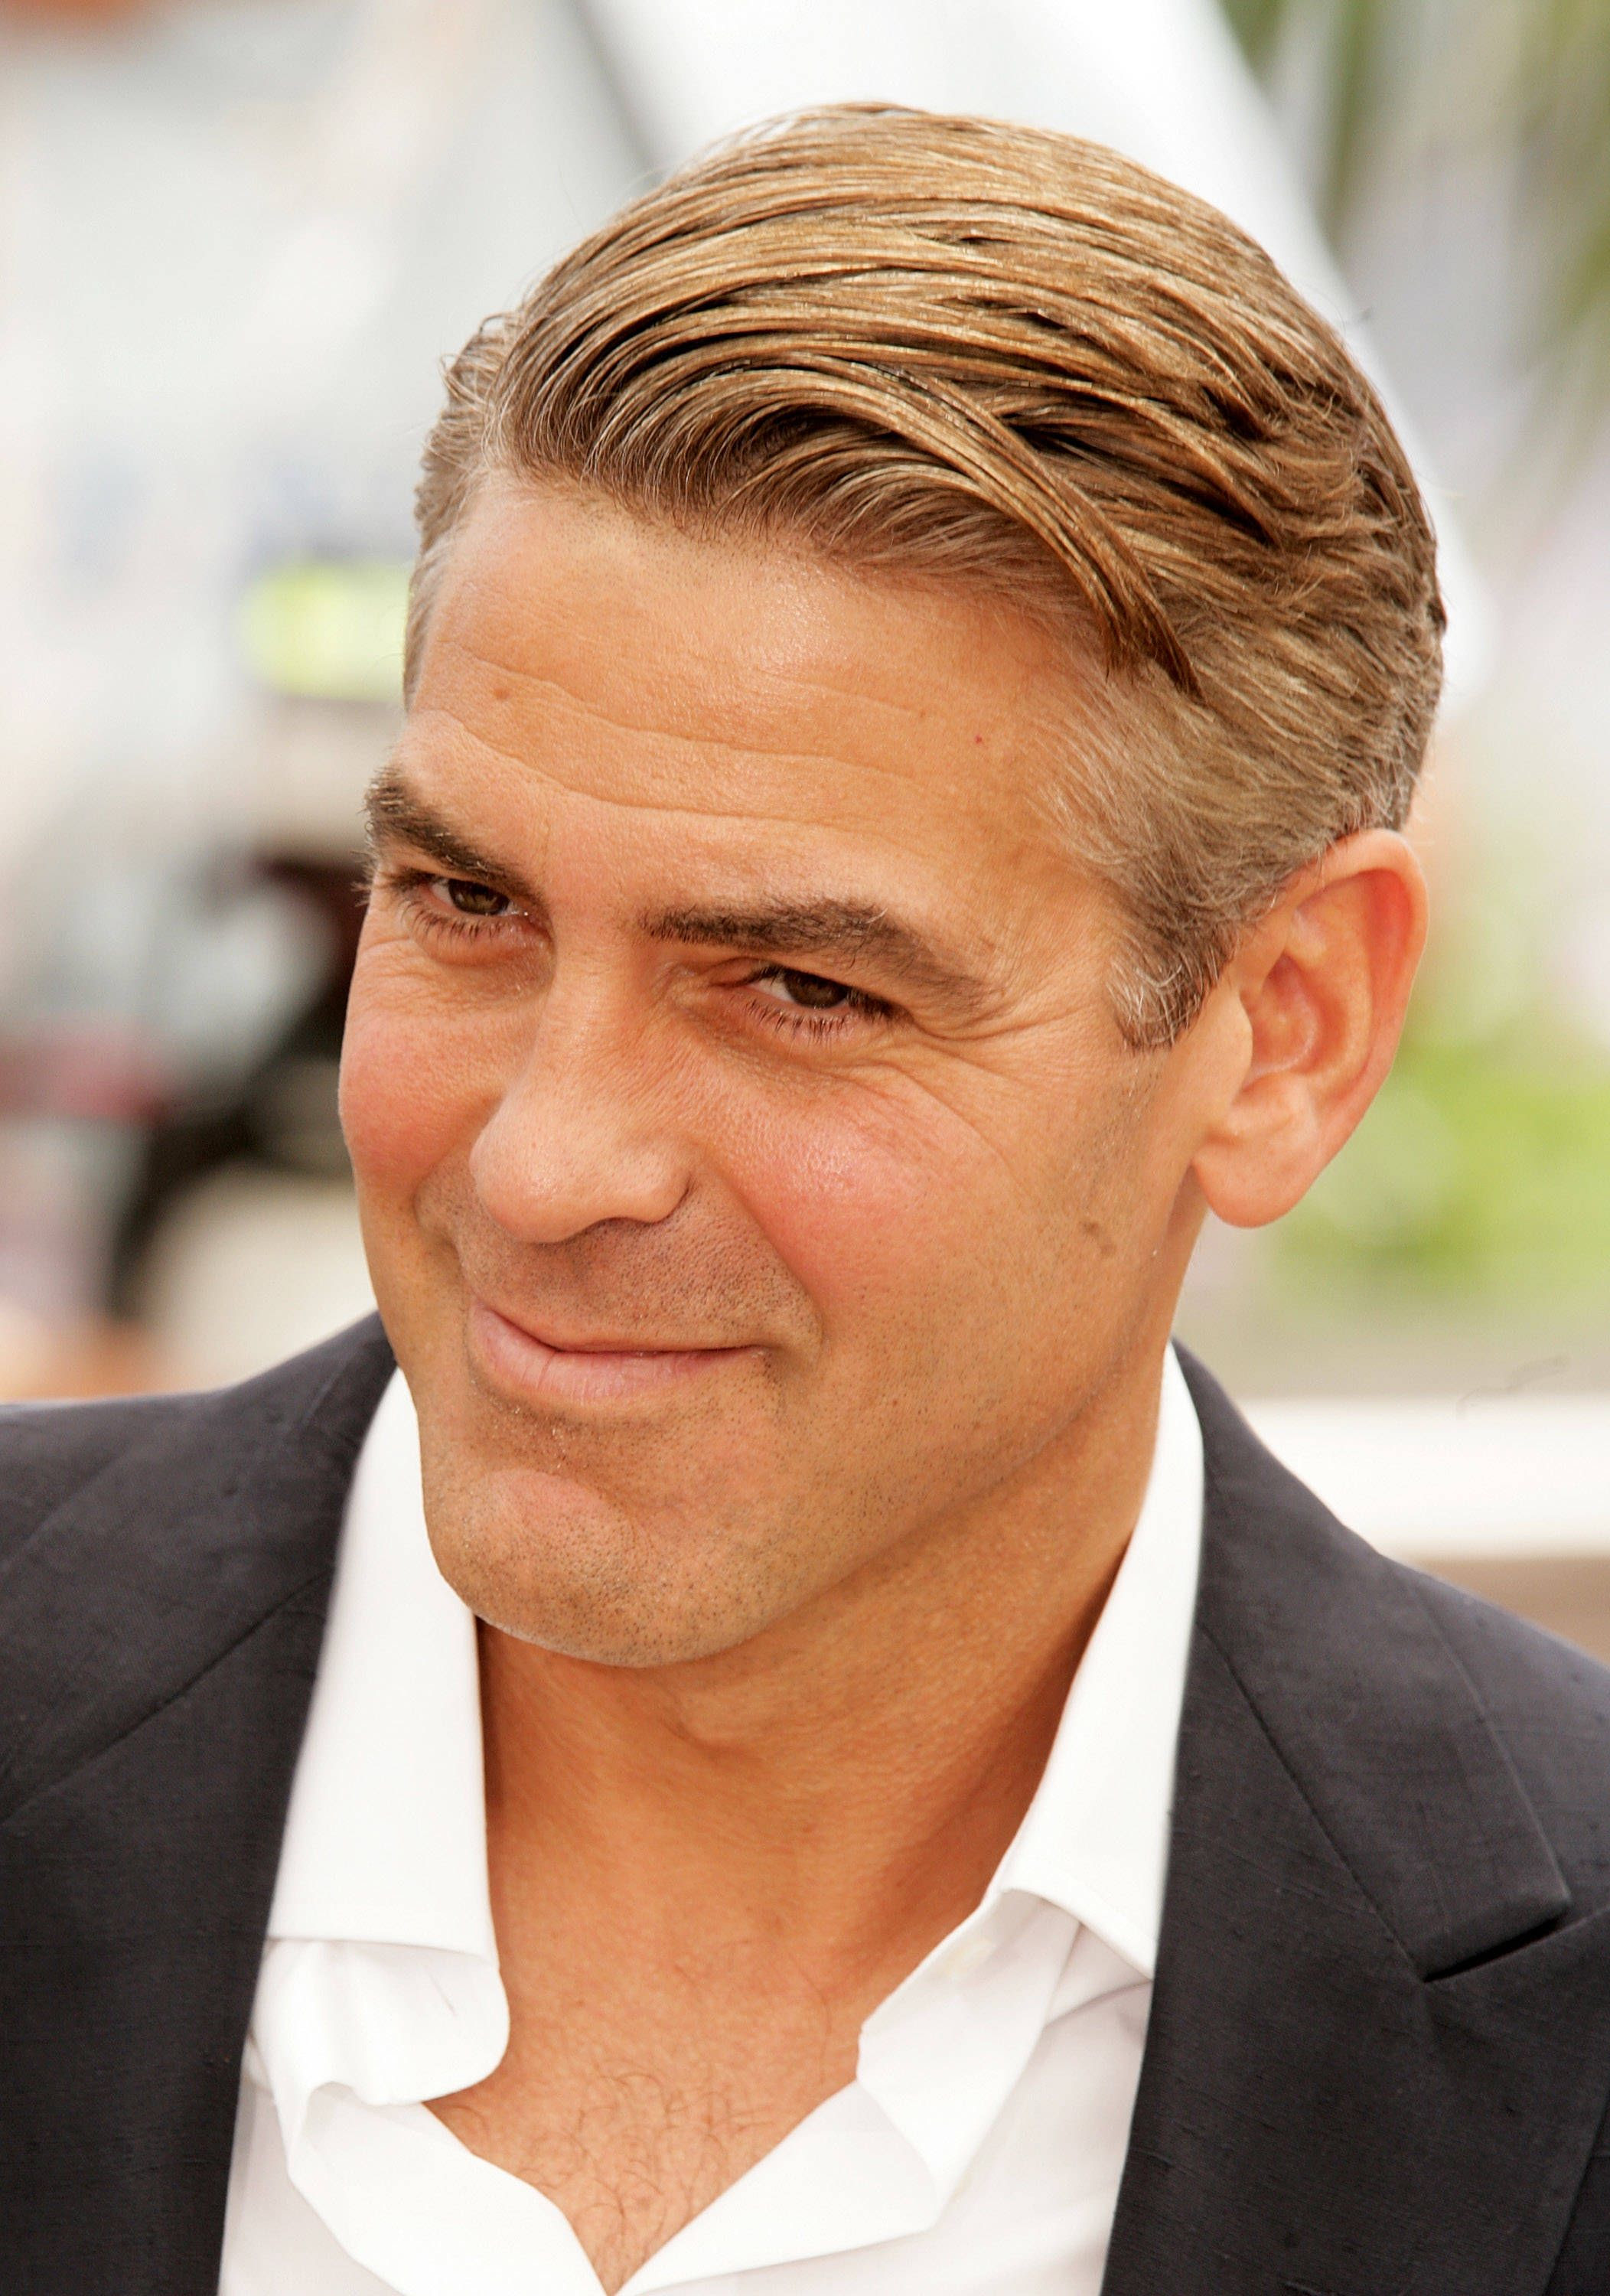 Best Graphic Of Popular Hairstyles For Men